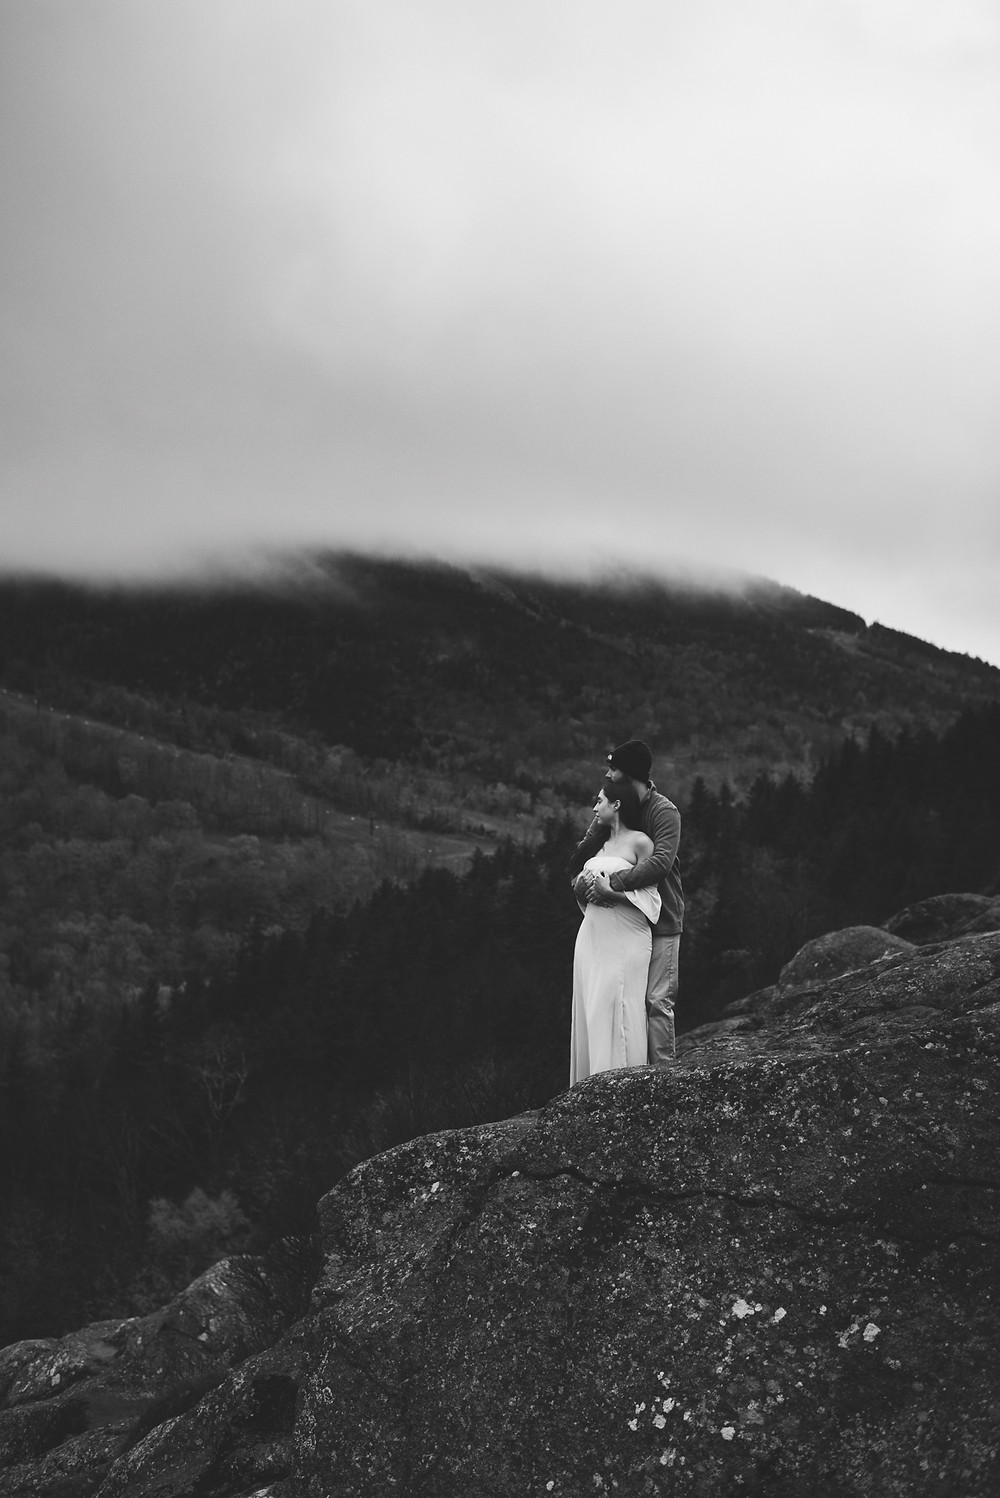 couple stands looking out at view with fog obscuring the top of the mountain in the background. white mountains in new hampshire